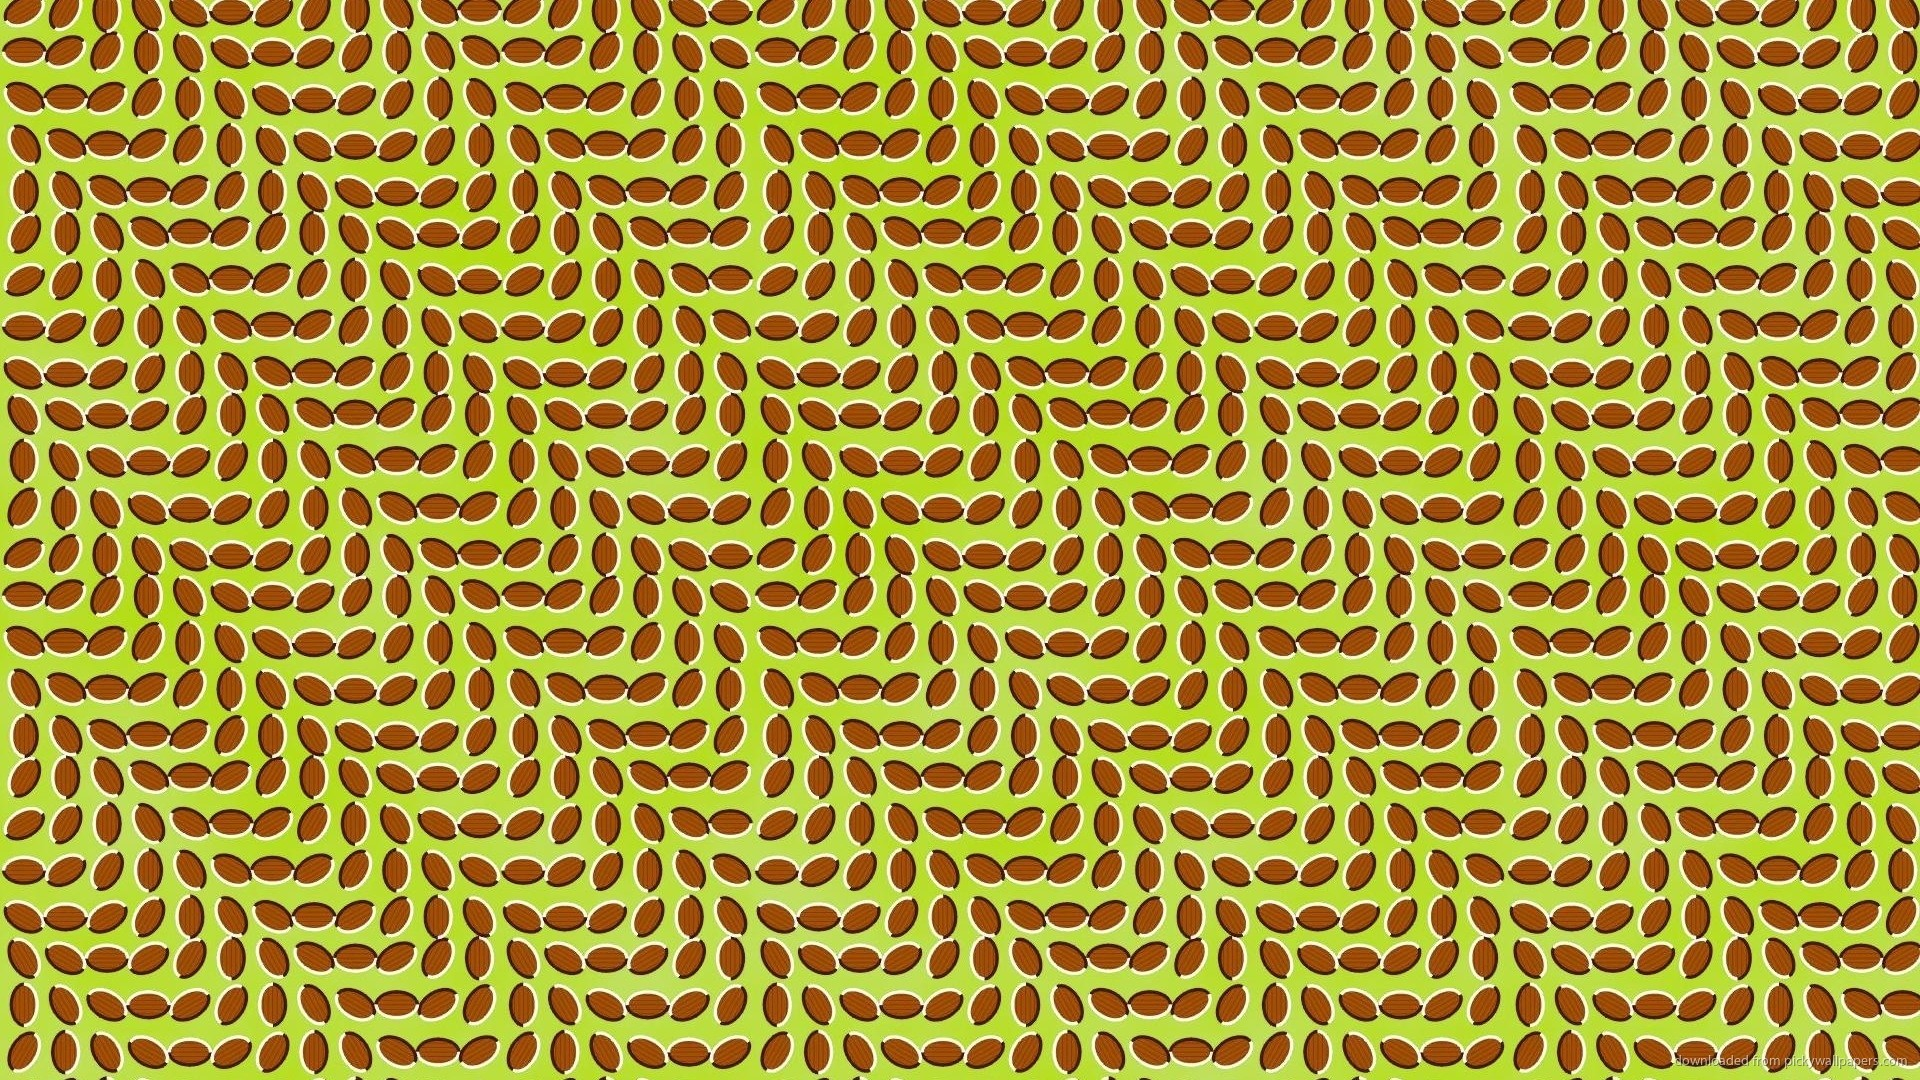 3d Illusion Wallpapers Hd Optical Illusions Wallpaper 64 Images